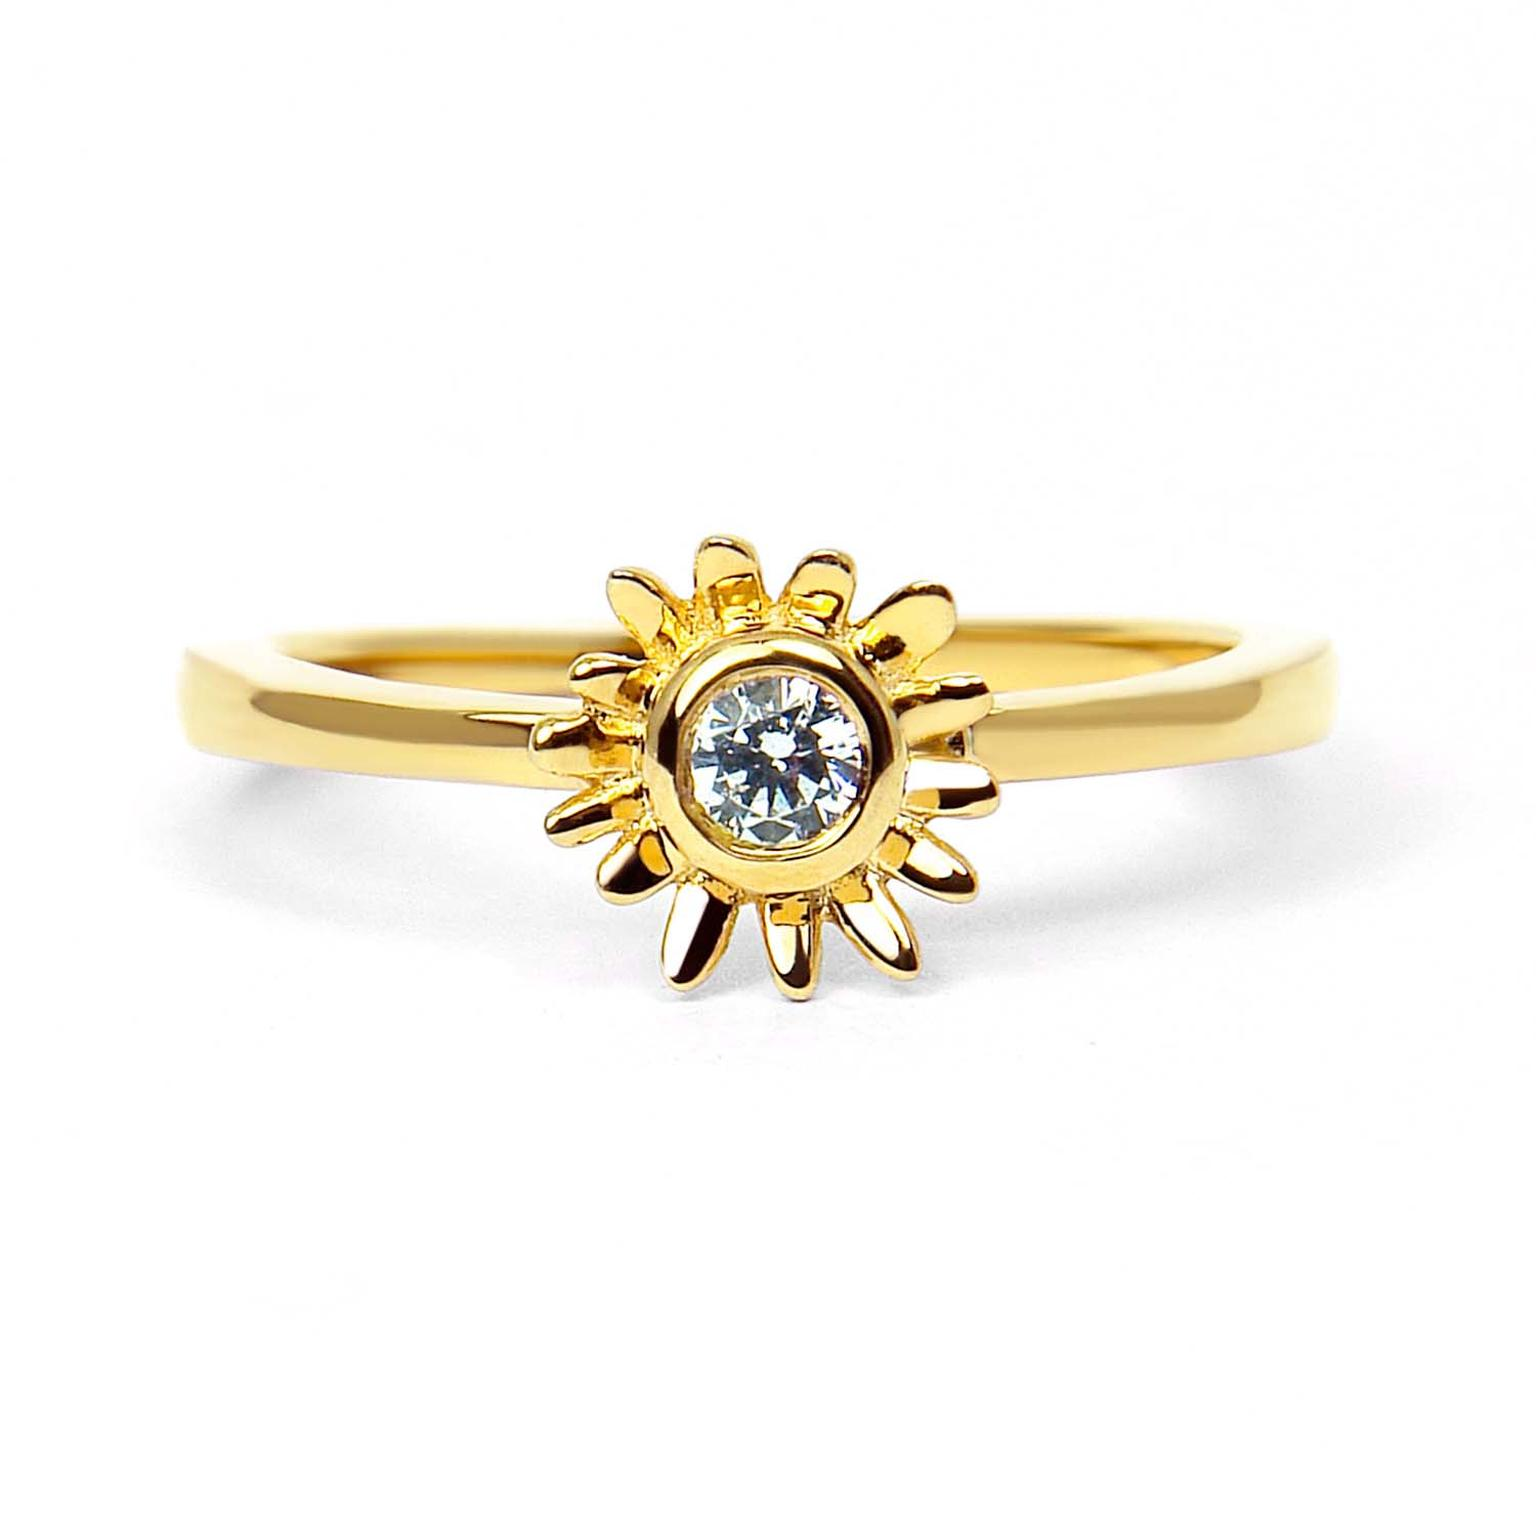 Arabel Lebrusan Bellis ethical diamond engagement ring, made from Fairtrade gold (£1,025).